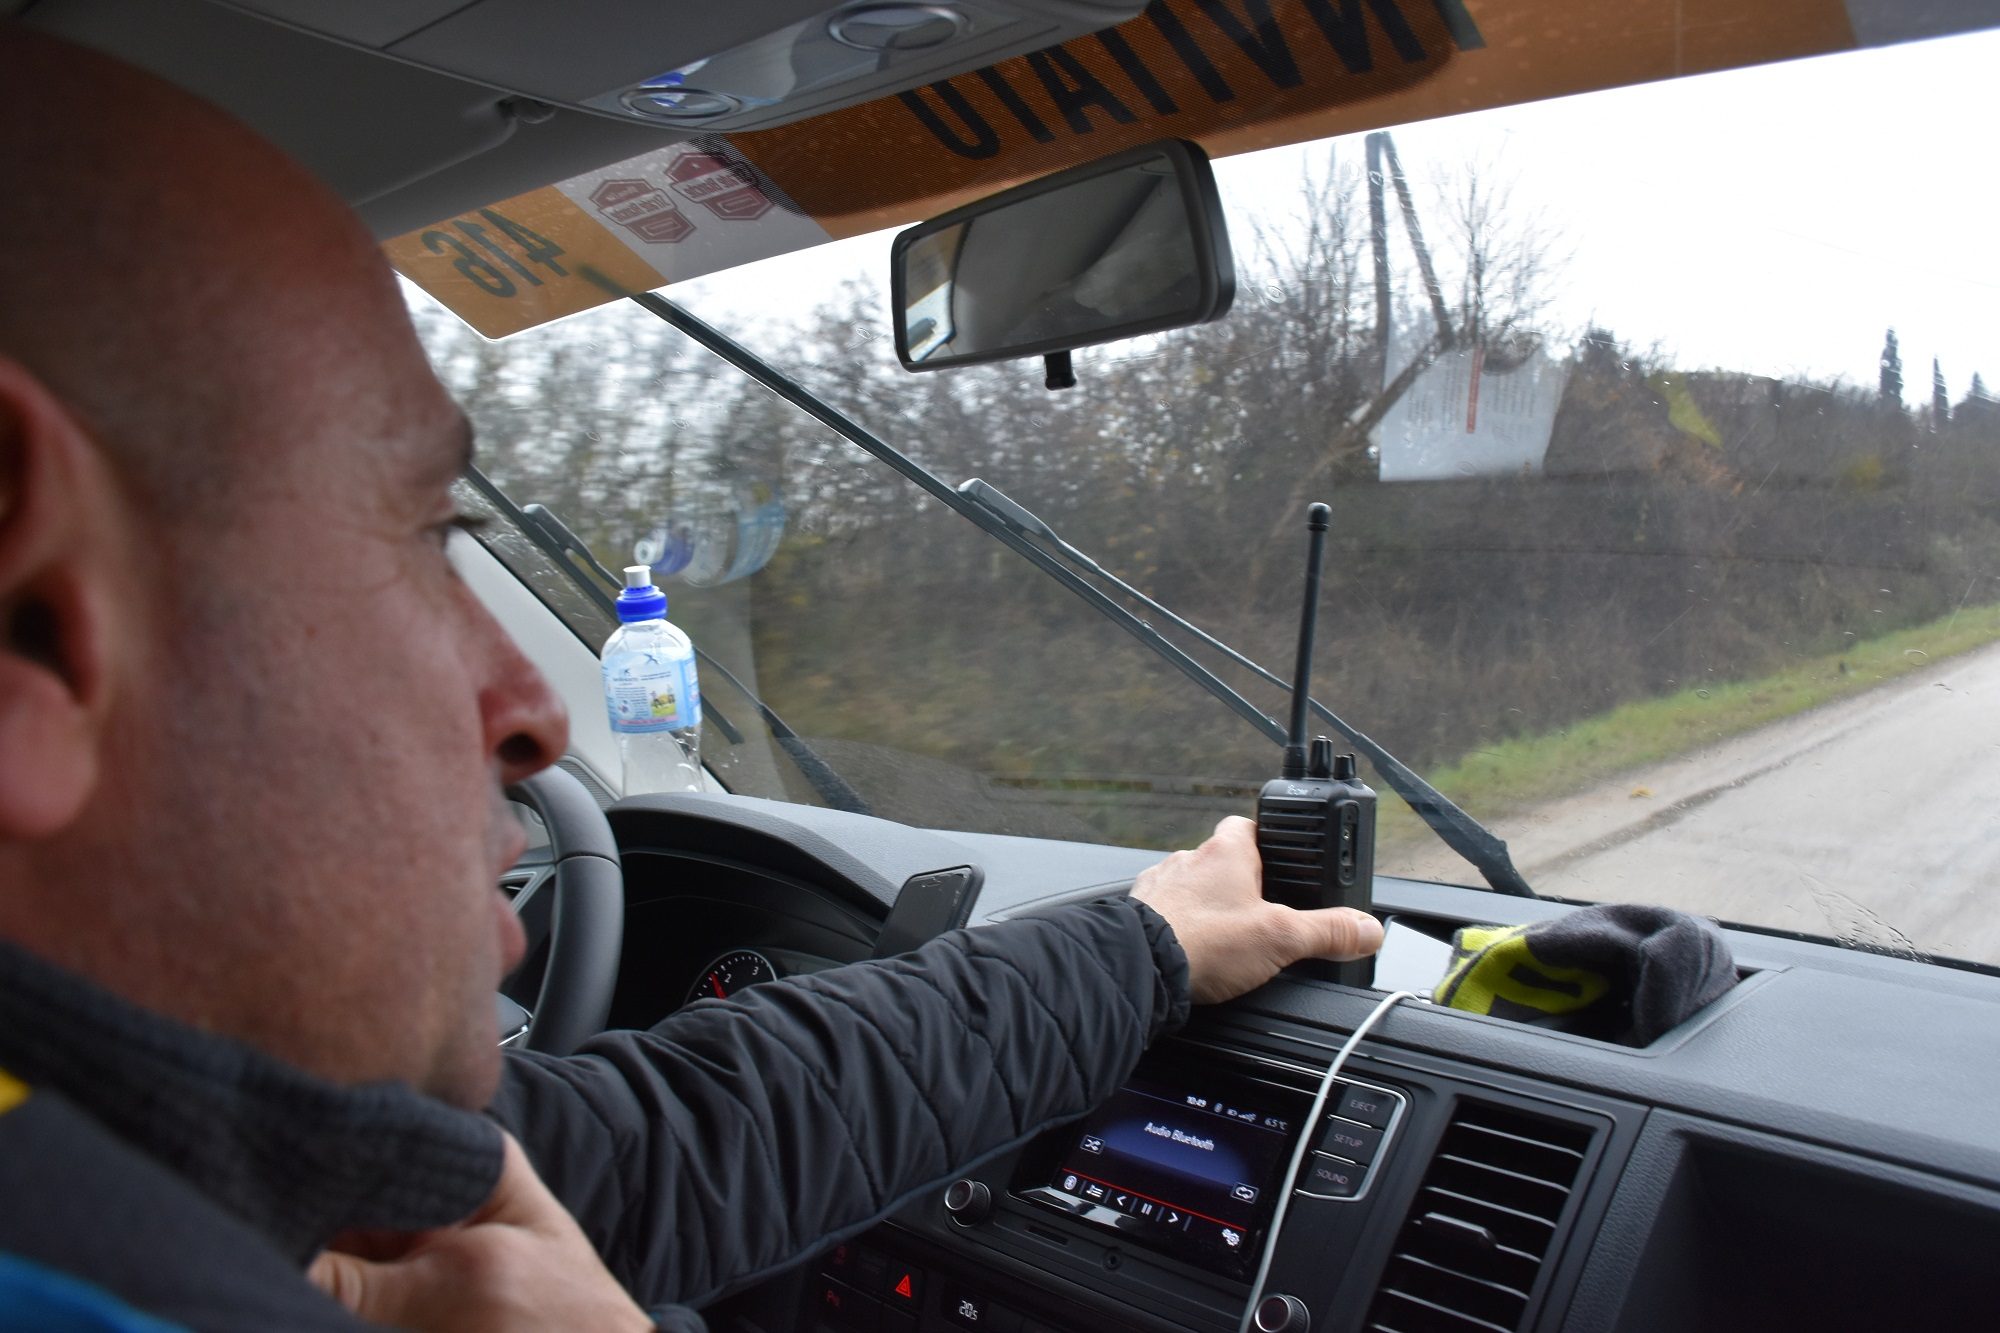 paolo bettini guiding the way in the car